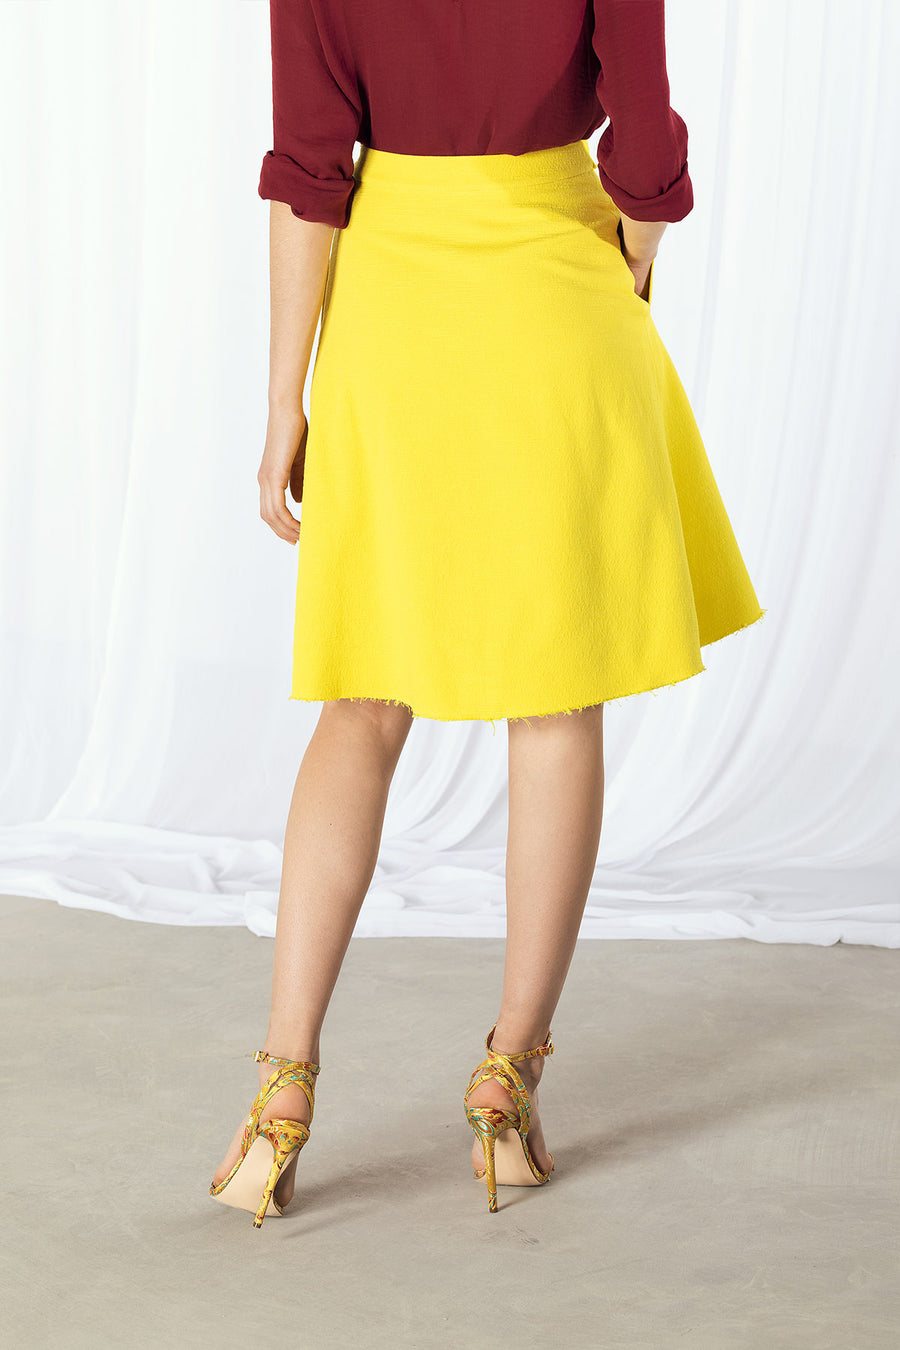 KARA Raw Edge Wrap Skirt - Yellow